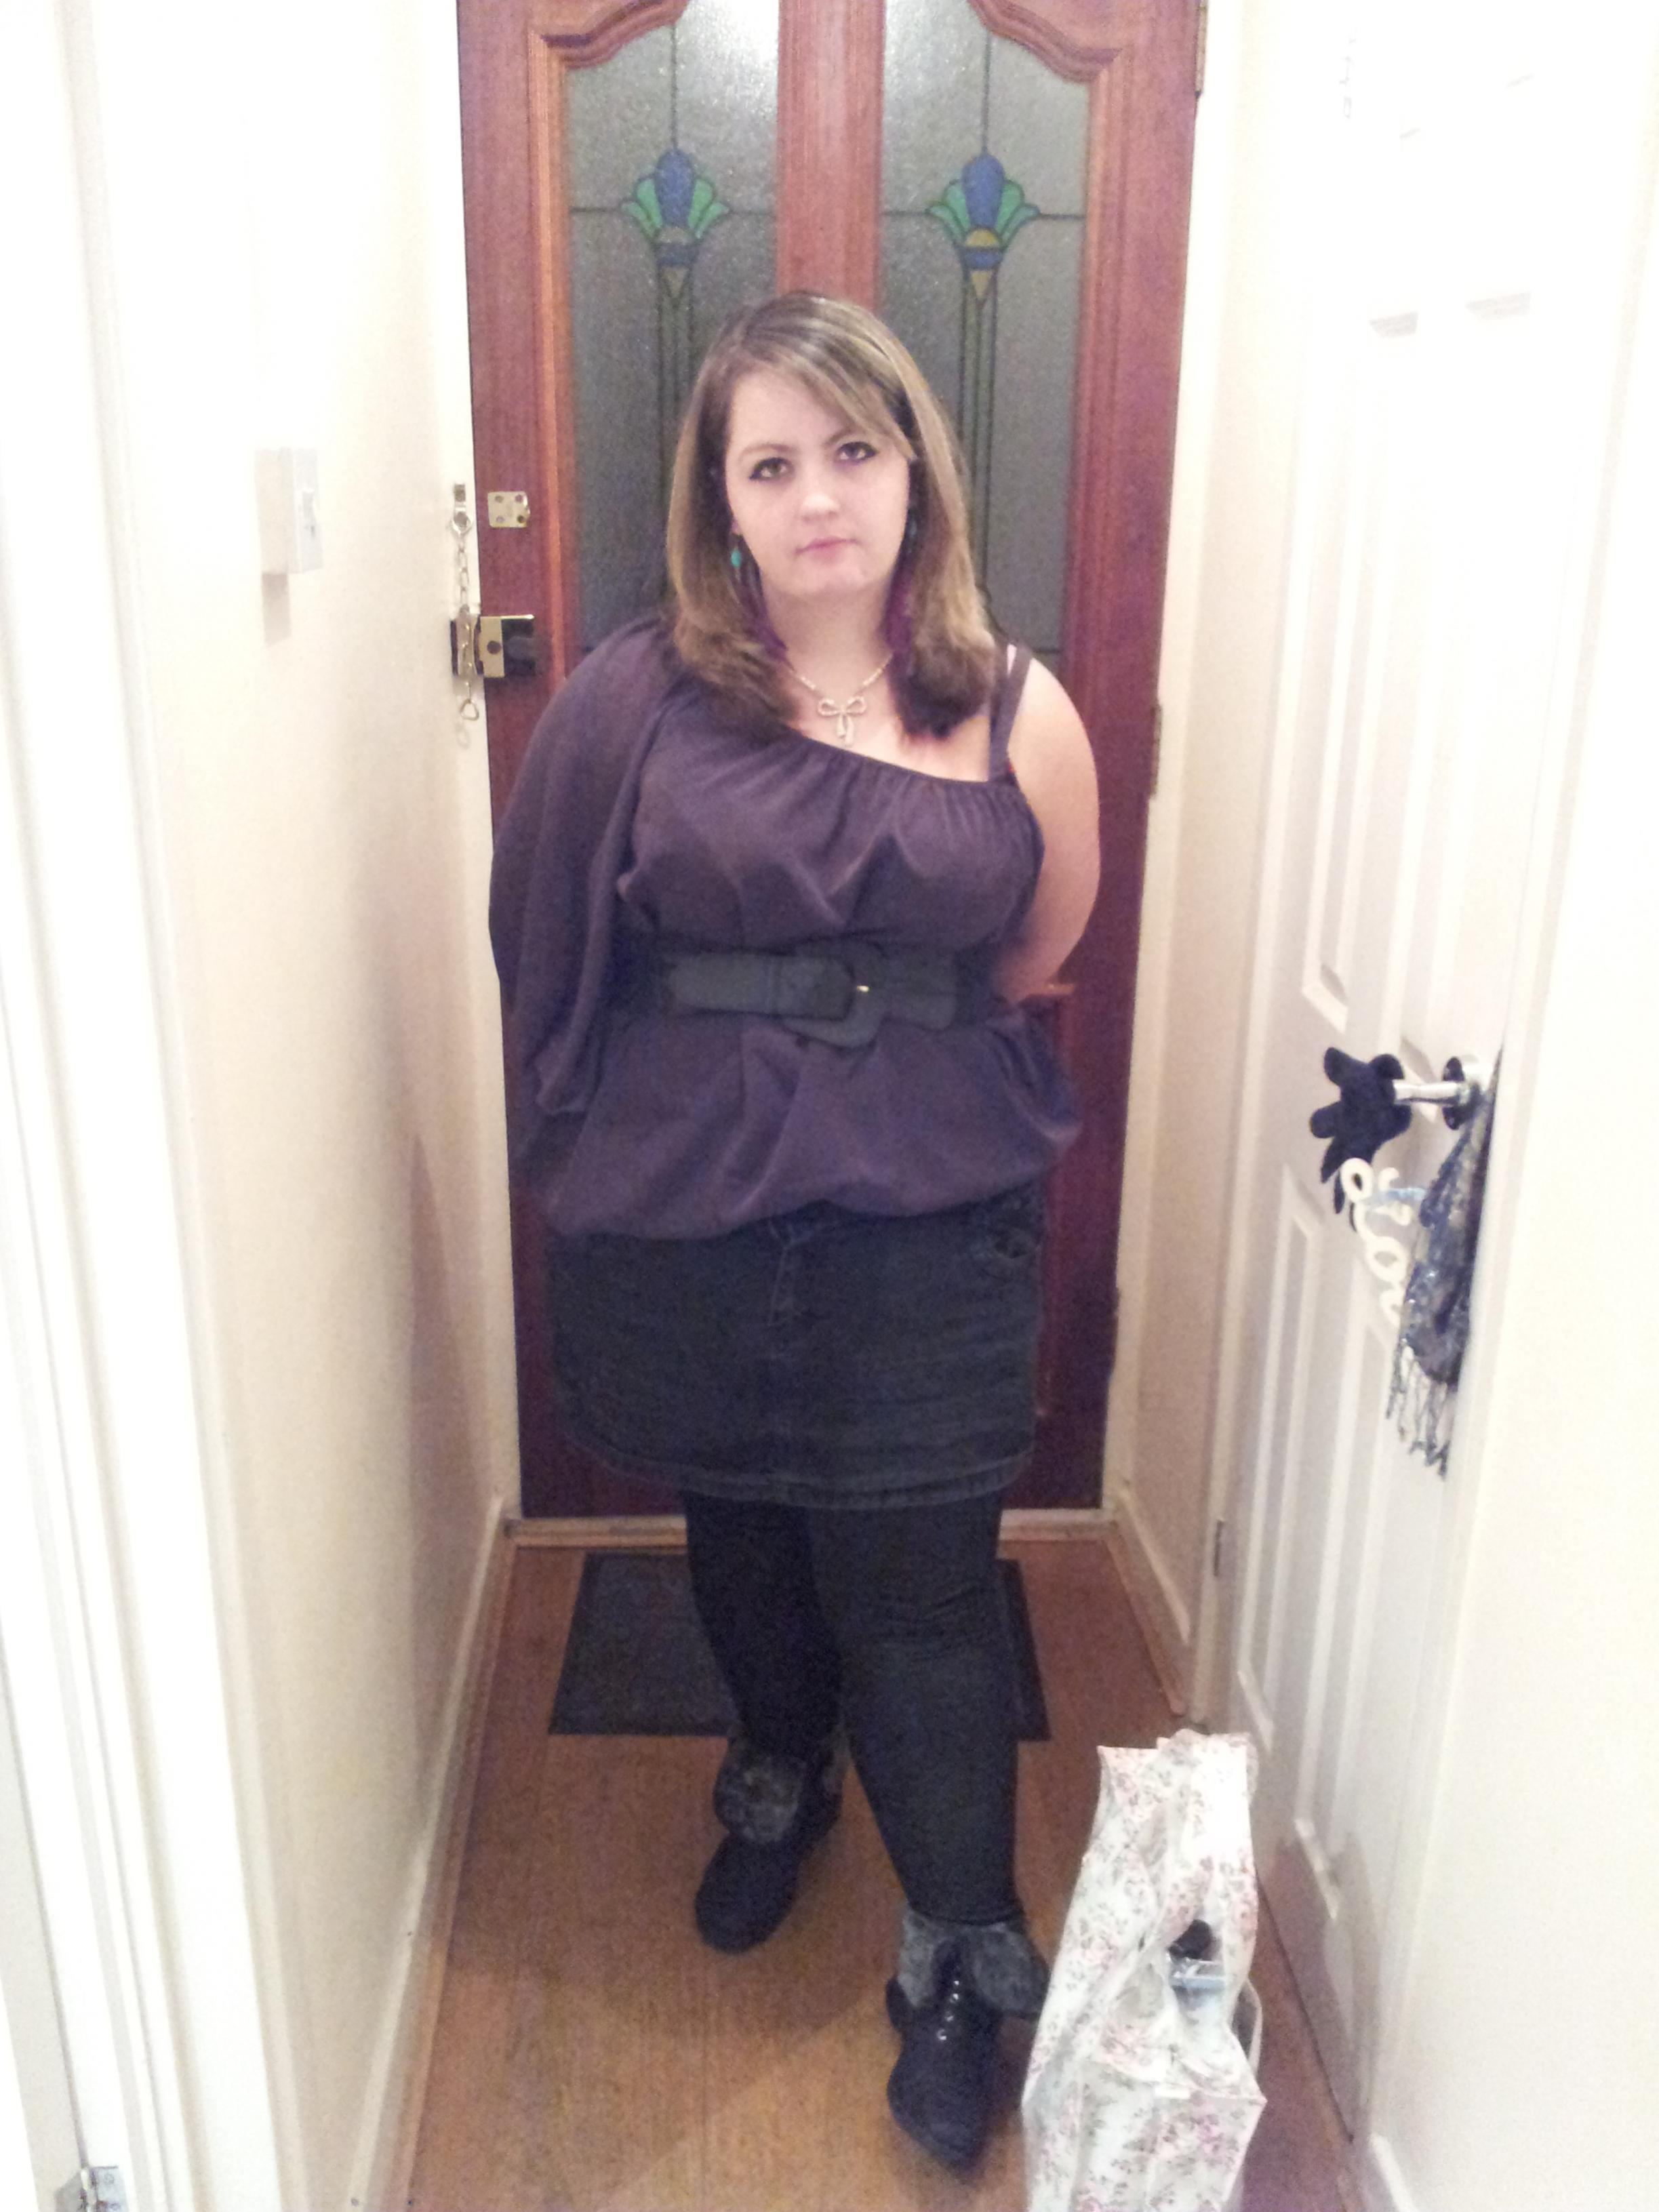 Weight loss Diary & General musings. - Page 24